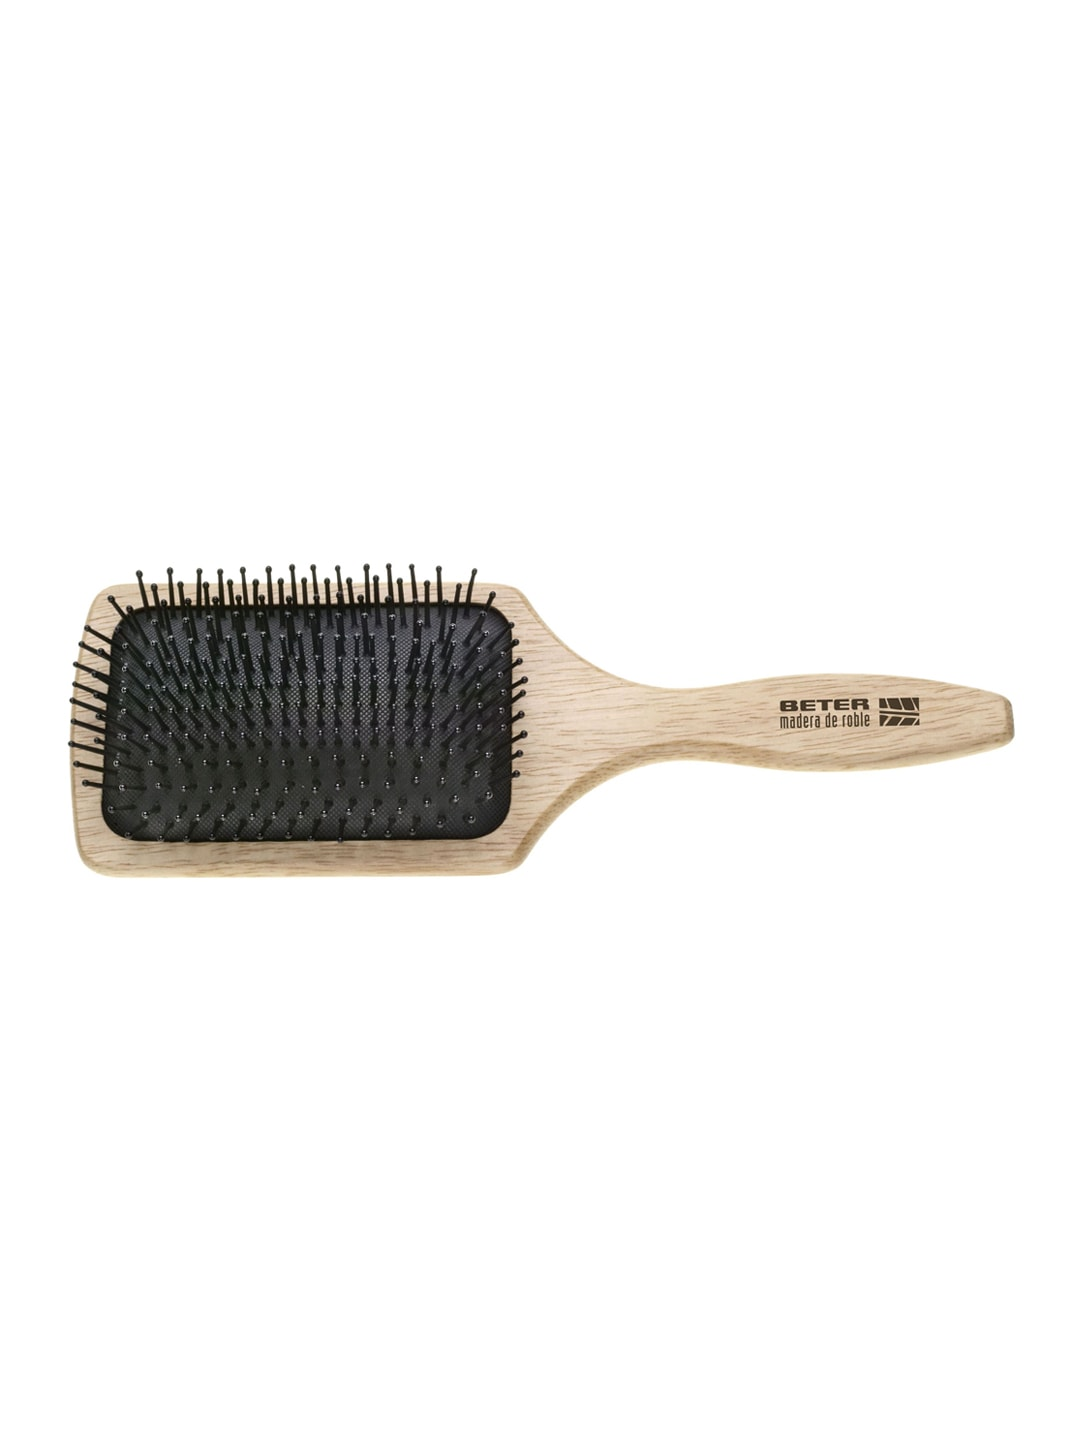 Beter Beige Nylon Pins Cushion Paddle Hair Brush image